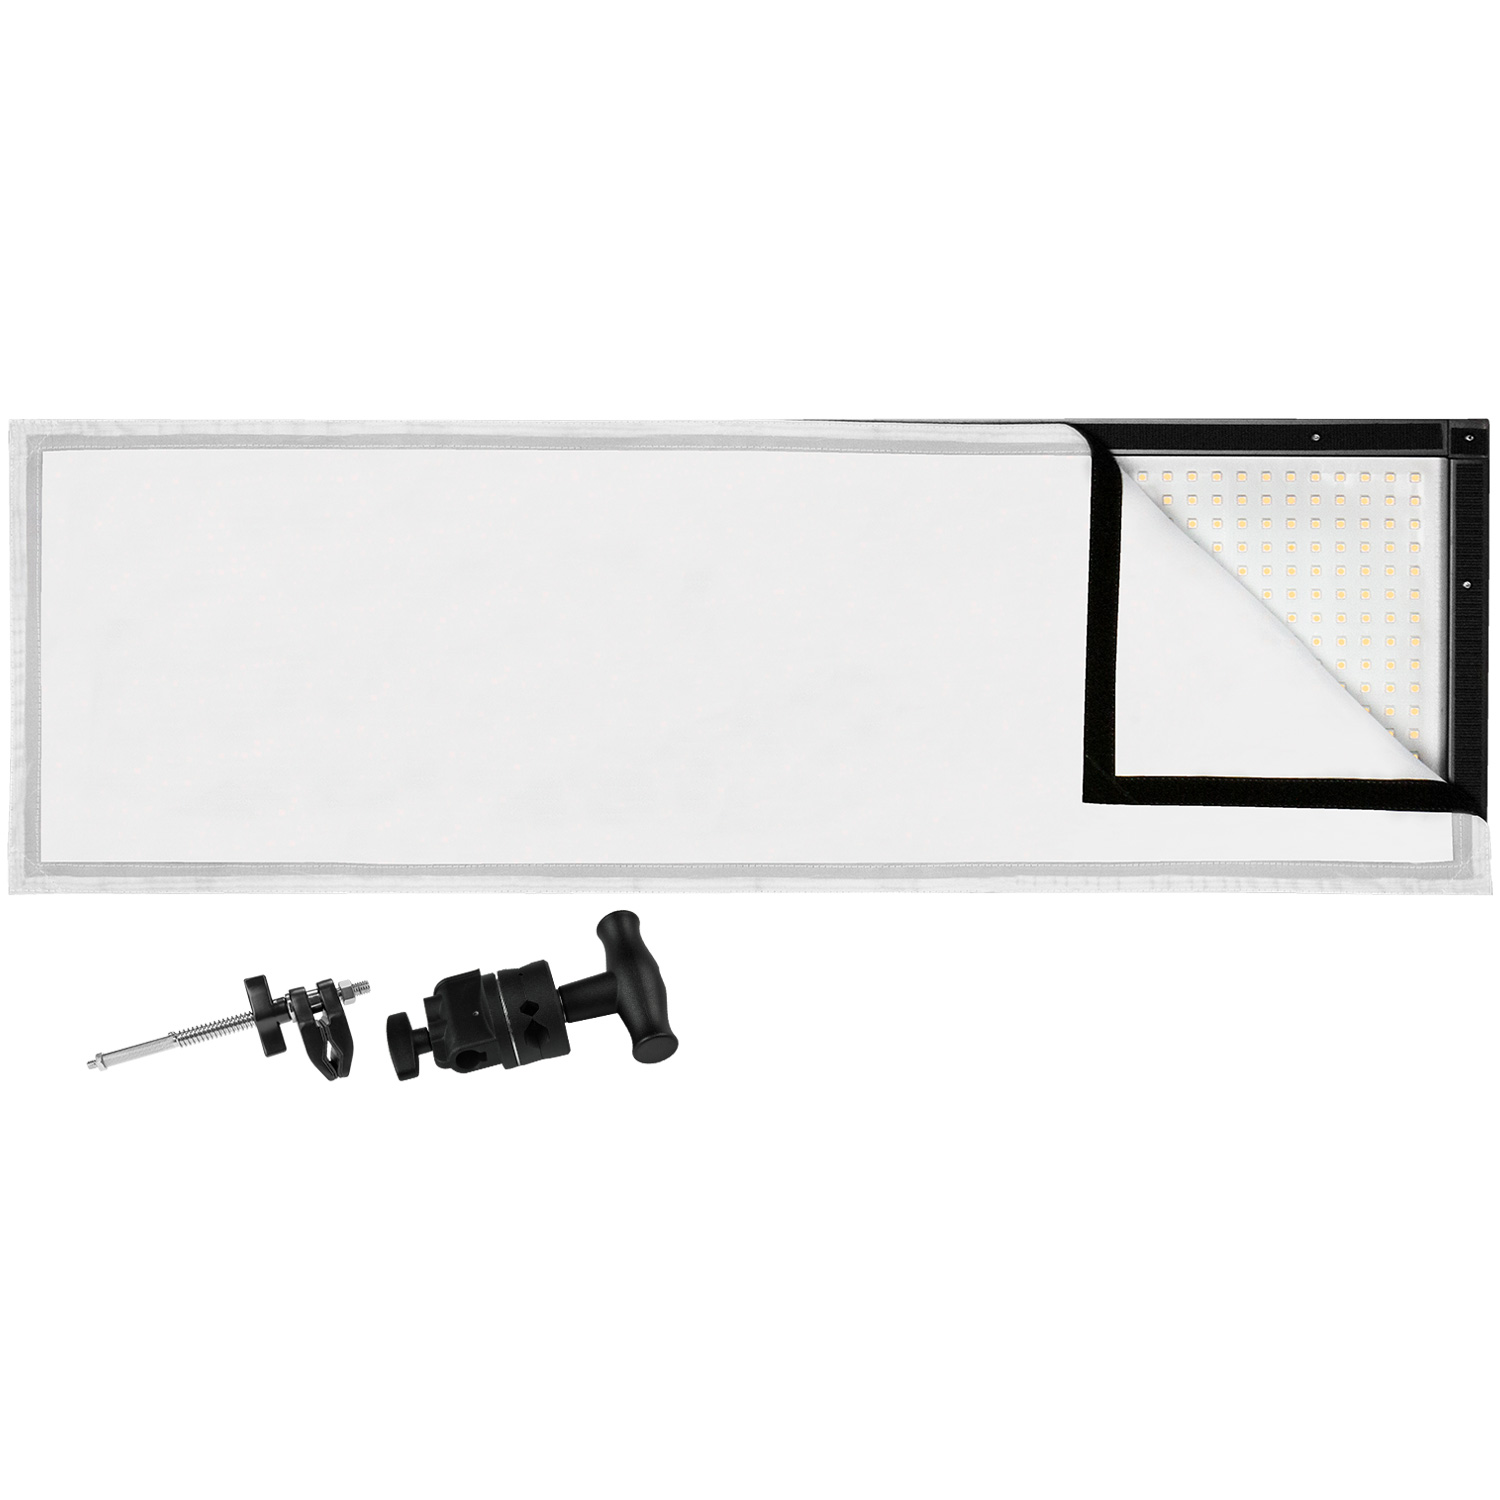 Flex Daylight LED Cine Set (1' x 3')